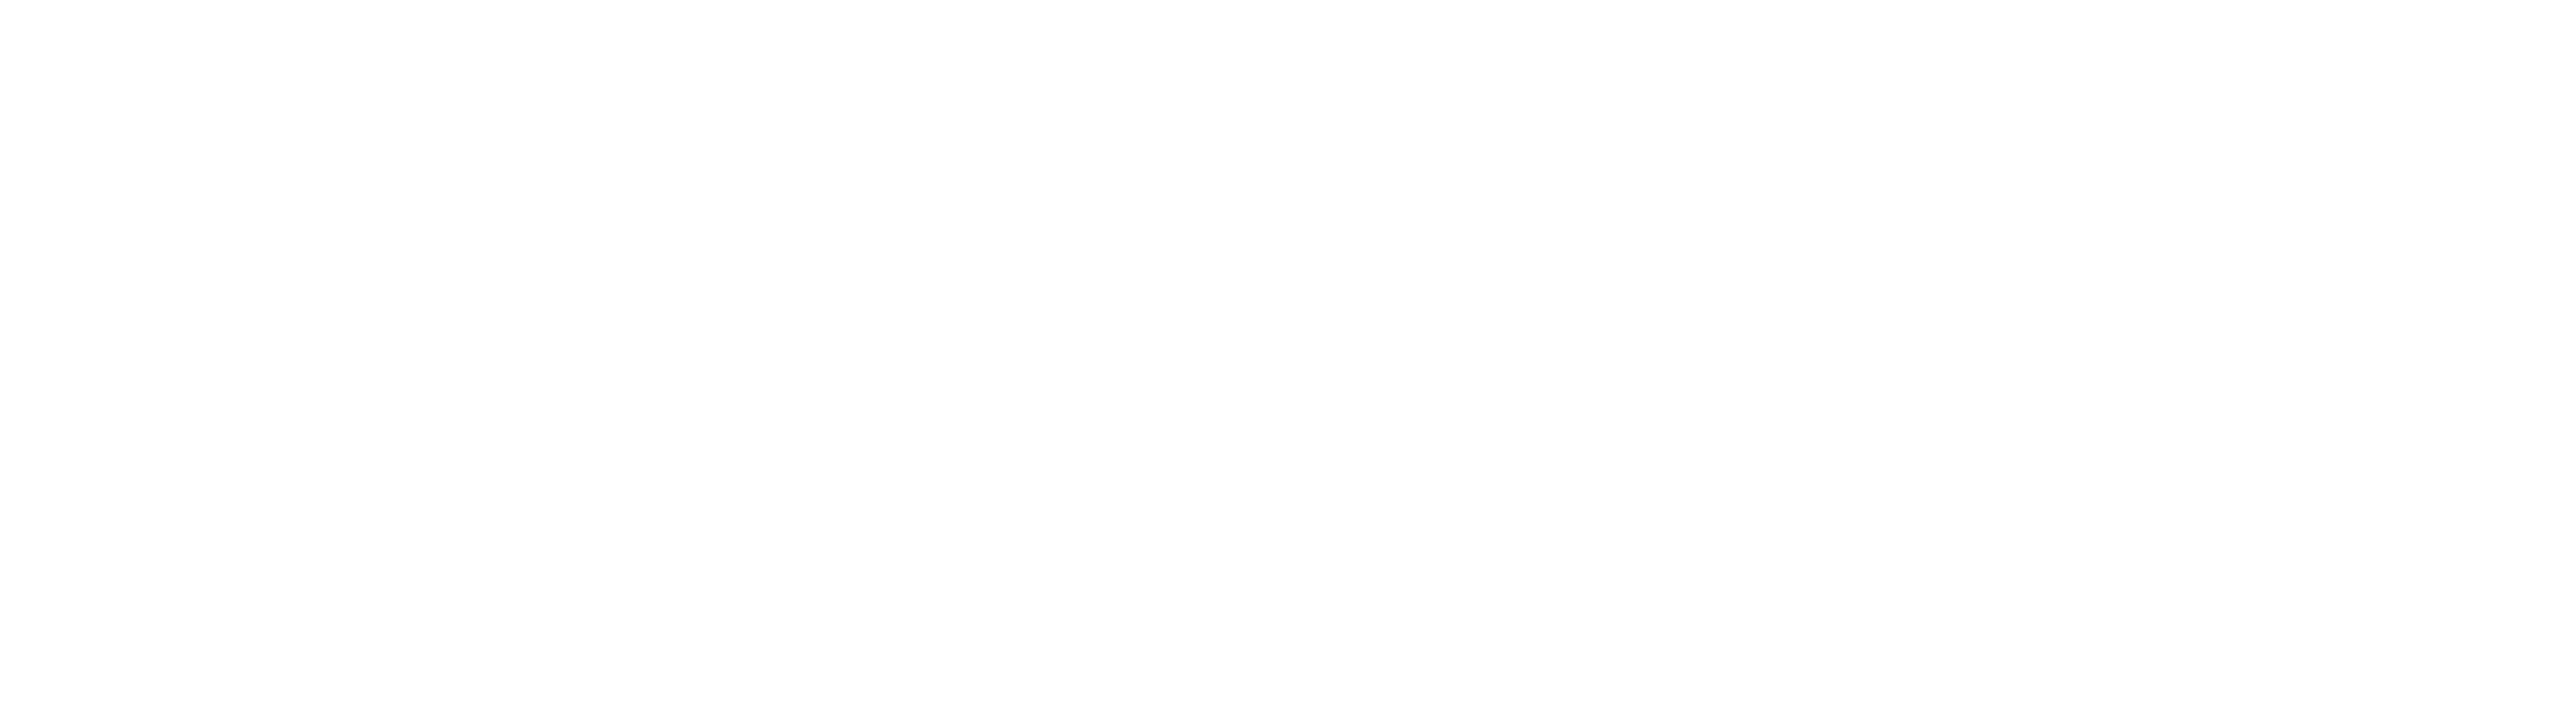 Leon County / City of Tallahassee